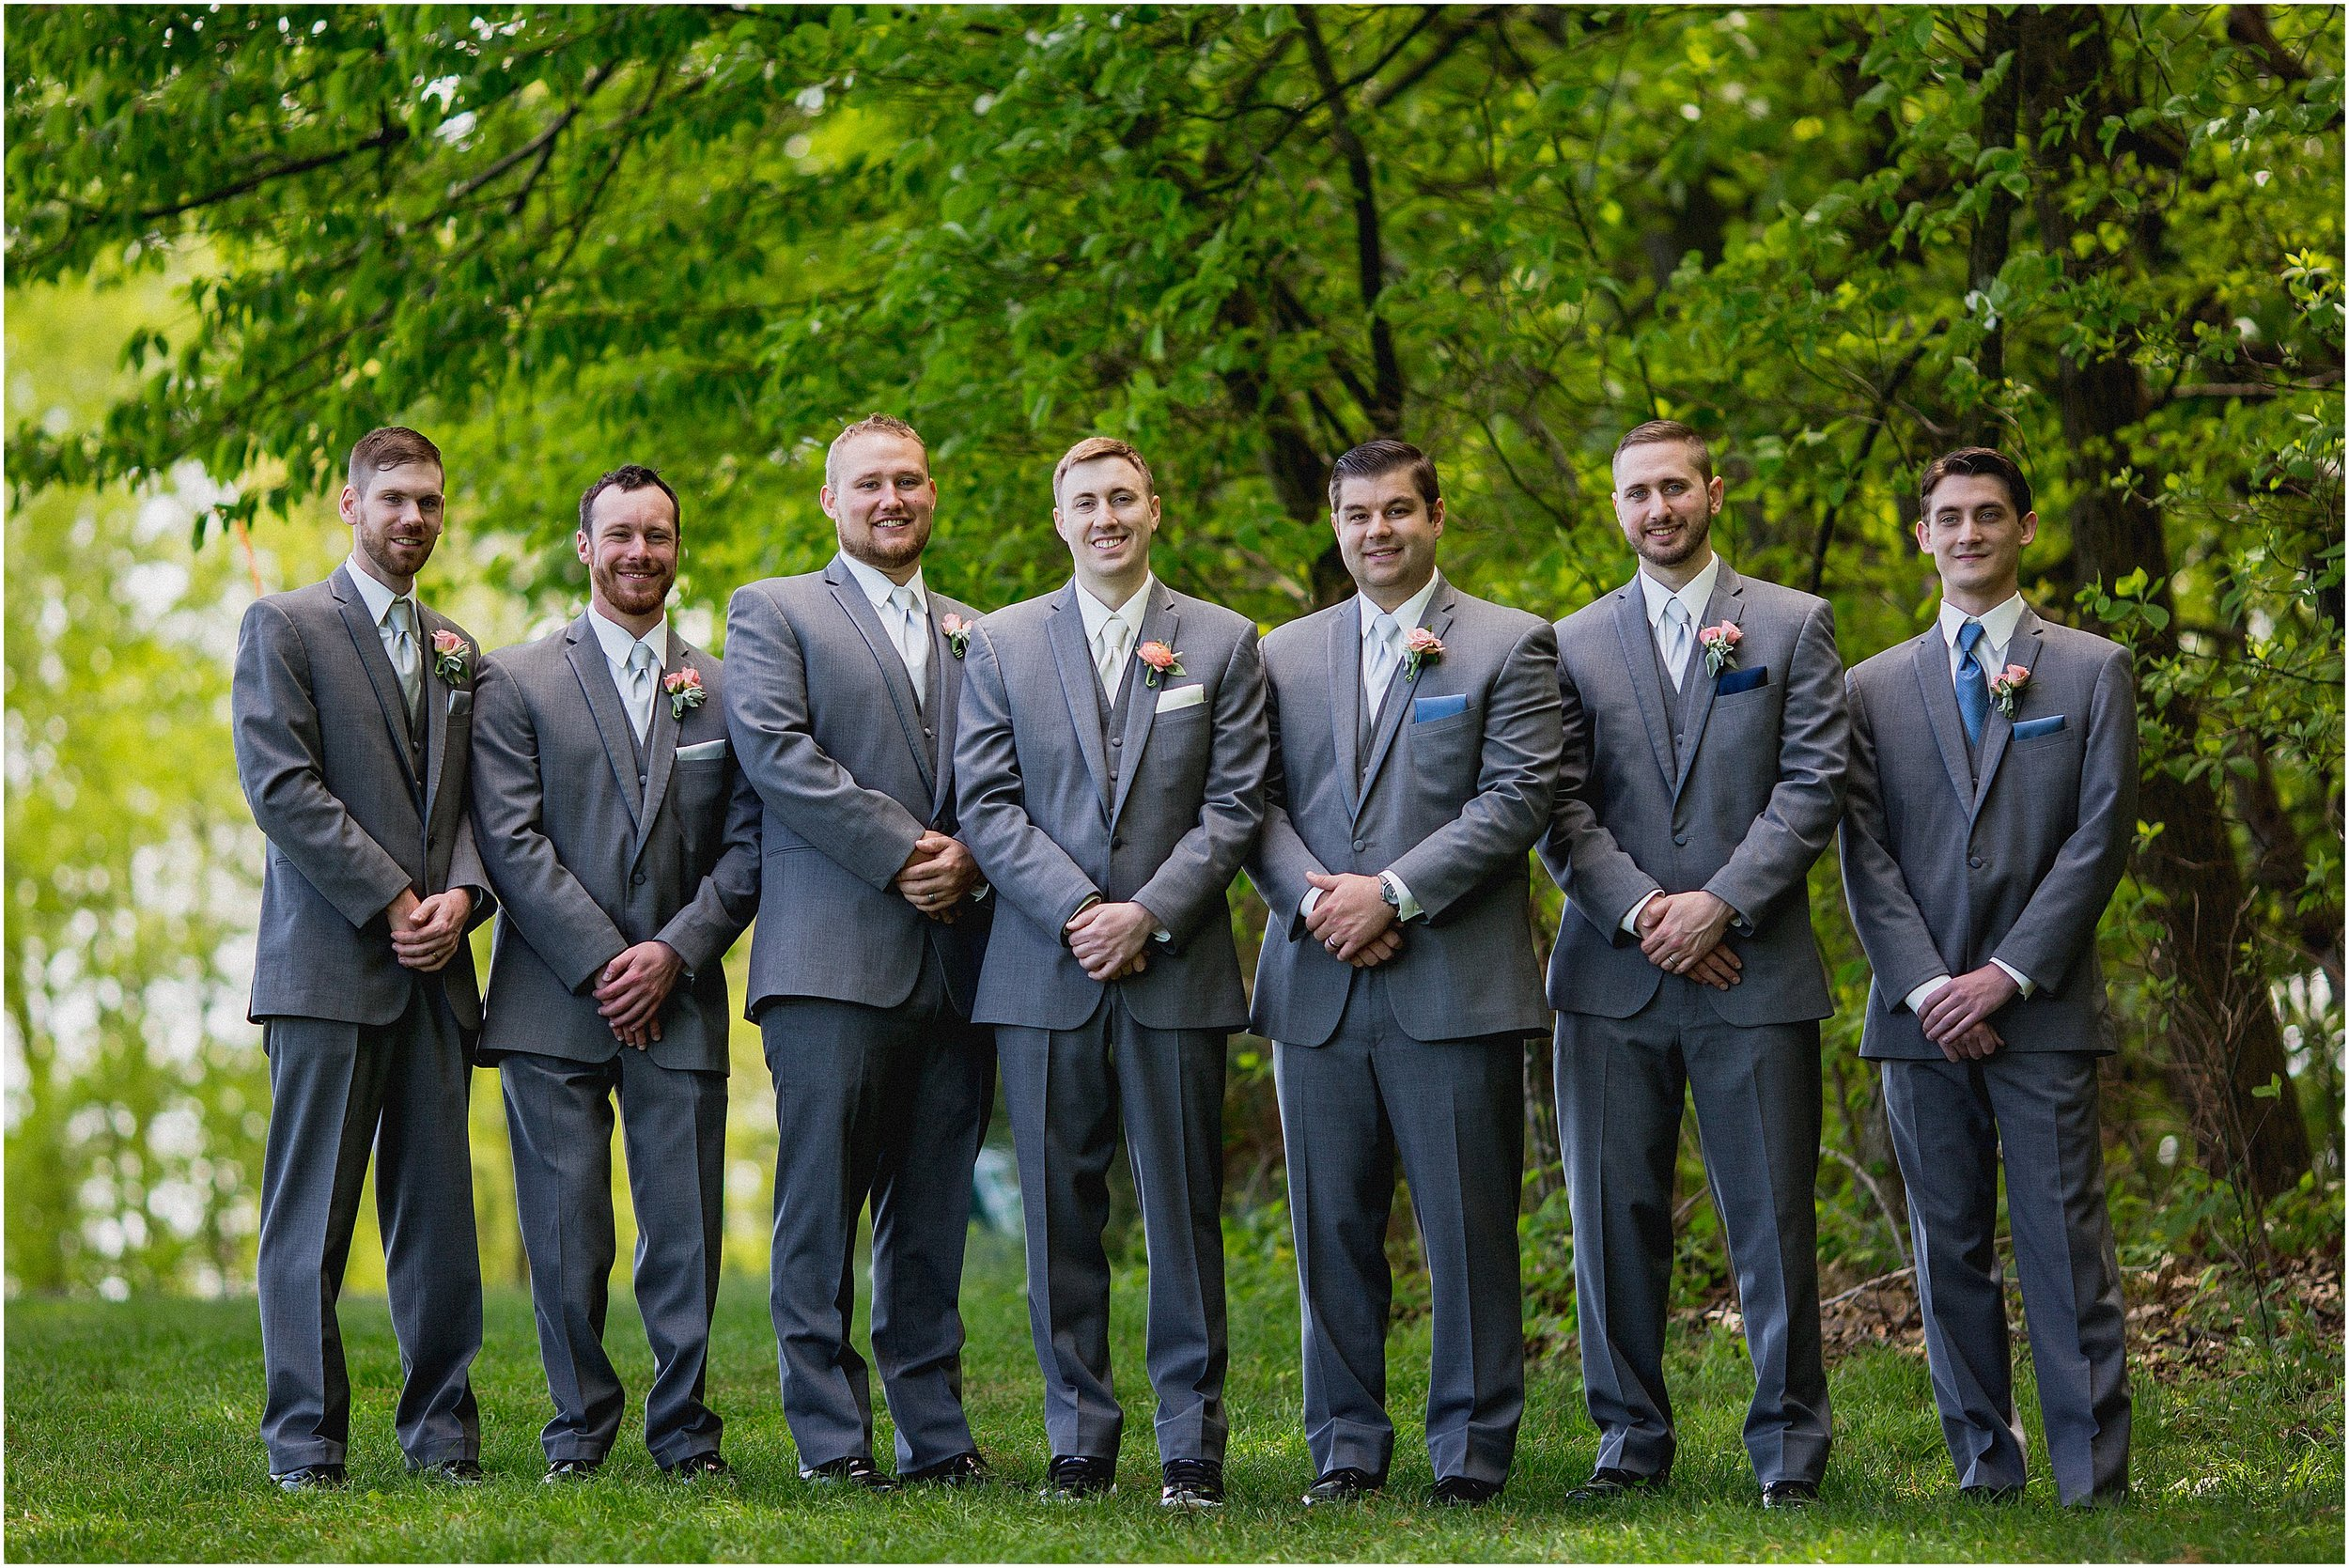 Whispering_Oaks_Wedding_Photographer_0447.jpg